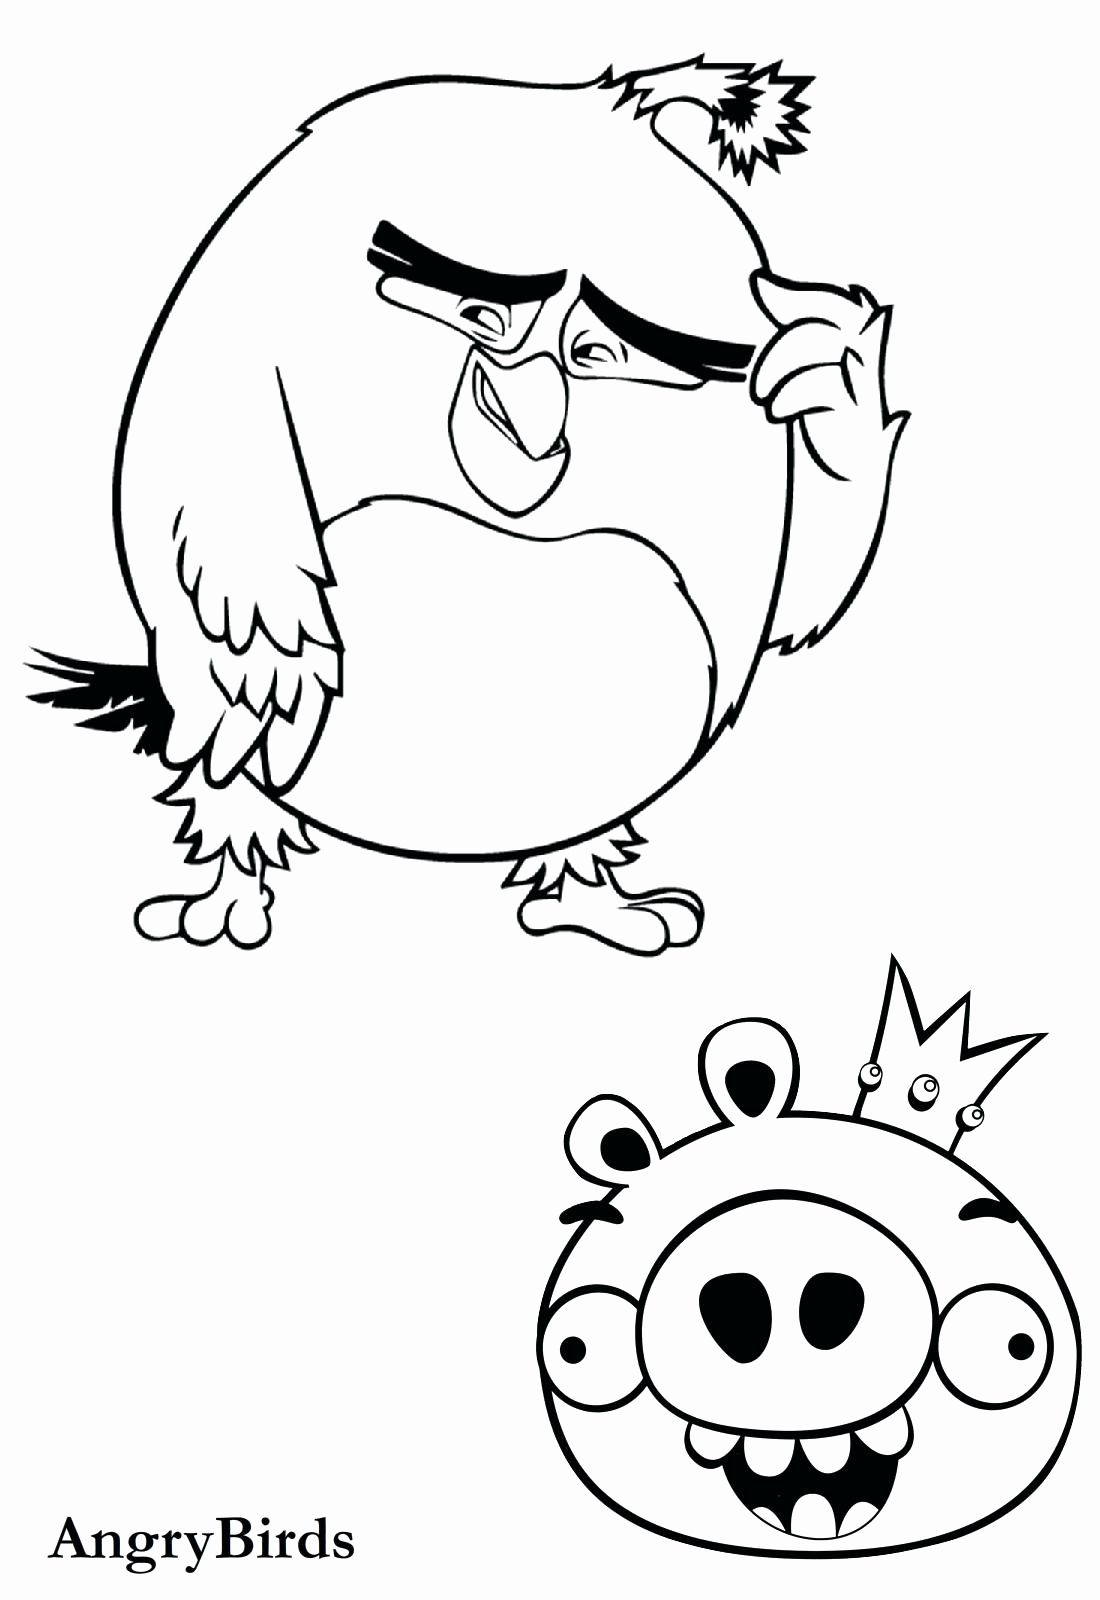 Bad Piggies Coloring Pages Best Of Star Wars Angry Birds Coloring Pages Sheets Pig In 2020 Bird Coloring Pages Cartoon Coloring Pages Animal Coloring Pages